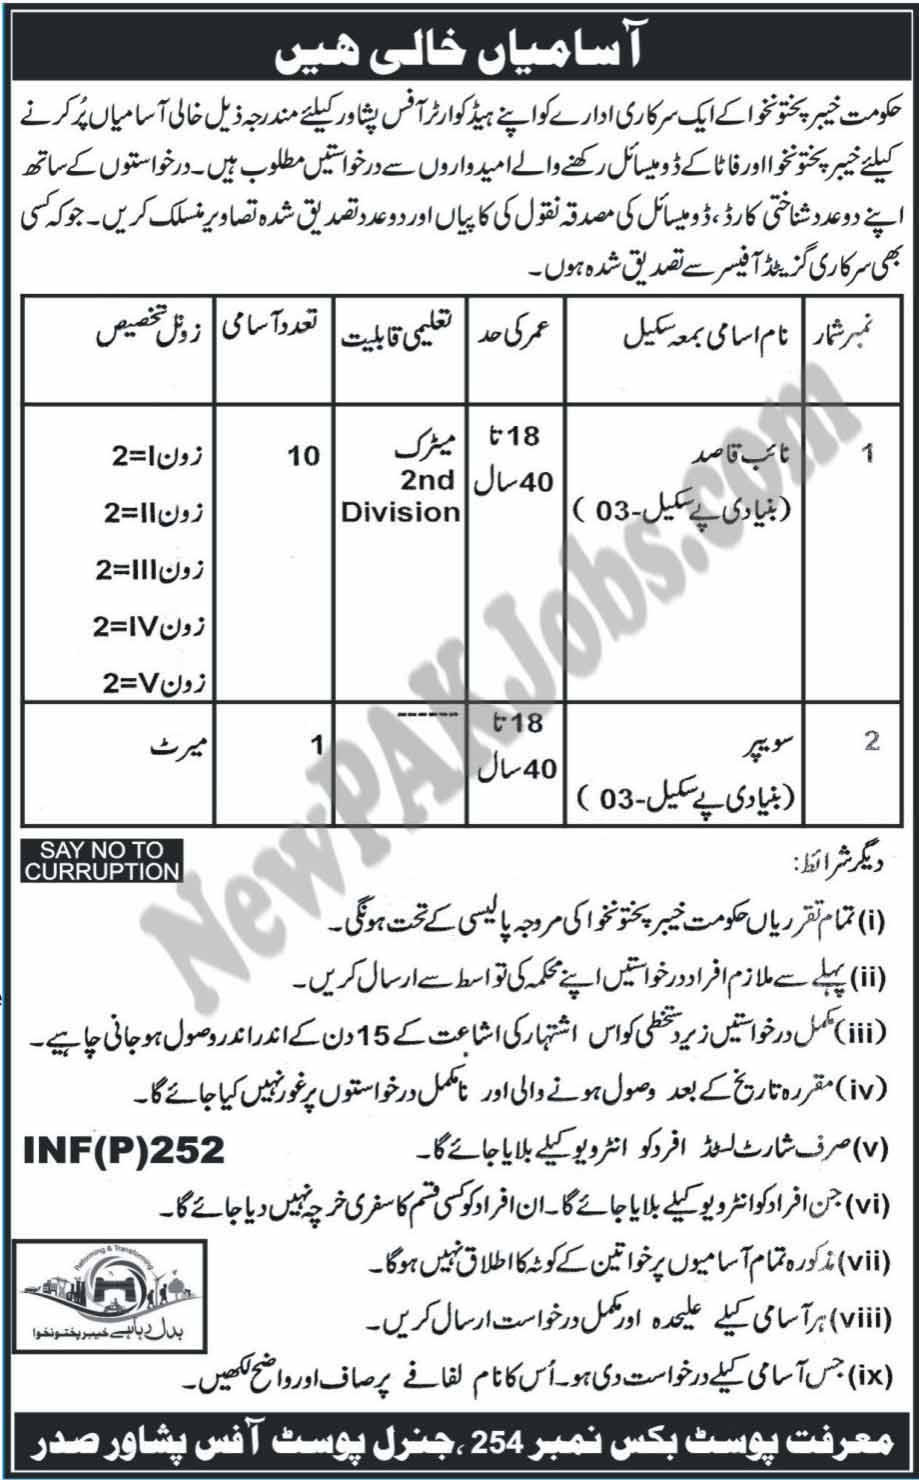 Newest Jobs for Naib Qasid & Sweeprs in Khyber Pakhtunkhwa Jan 2018